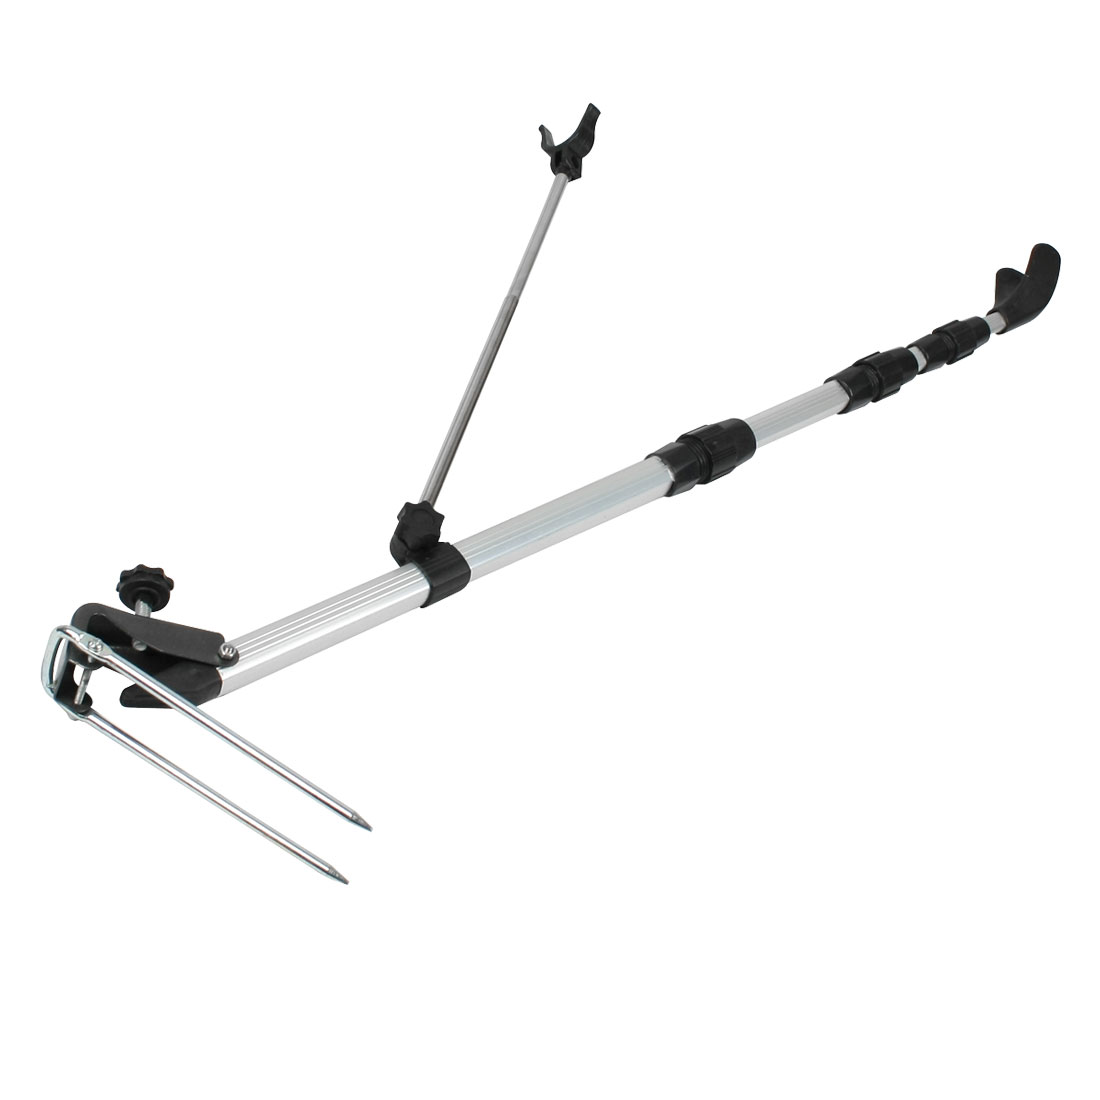 1.5M 4.9 Ft 4 Section Telescoping Fishing Rod Fish Pole Stand Holder